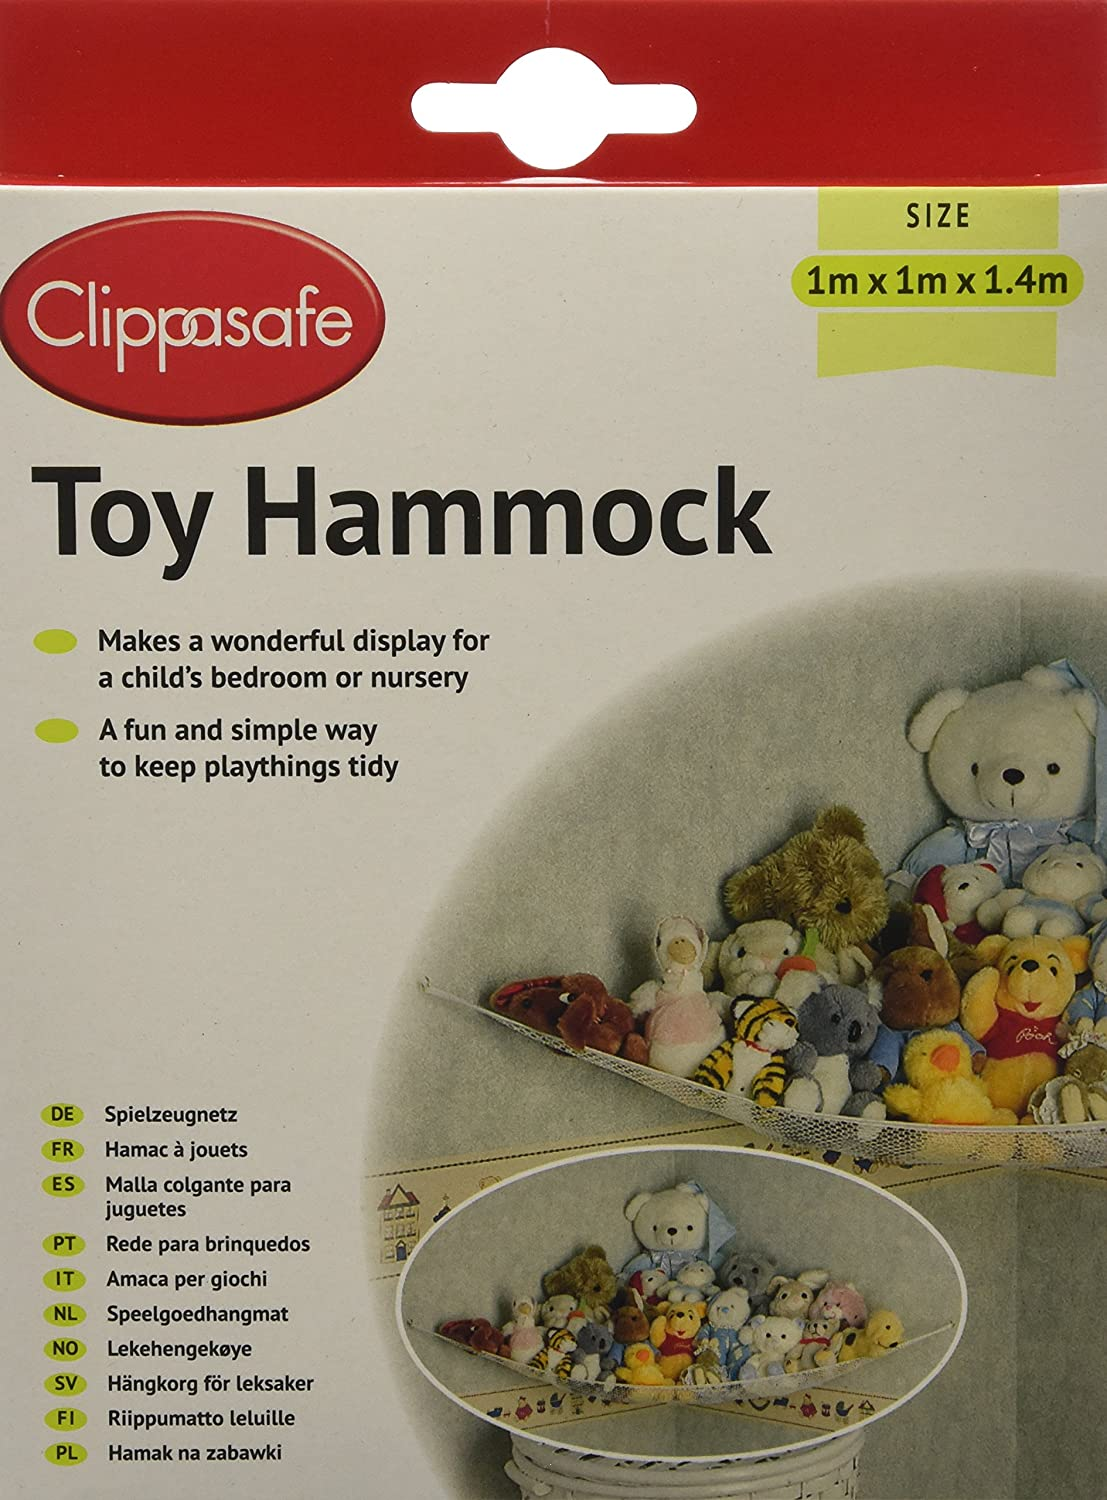 Clippasafe Toy Hammock KitchenCentre CL370